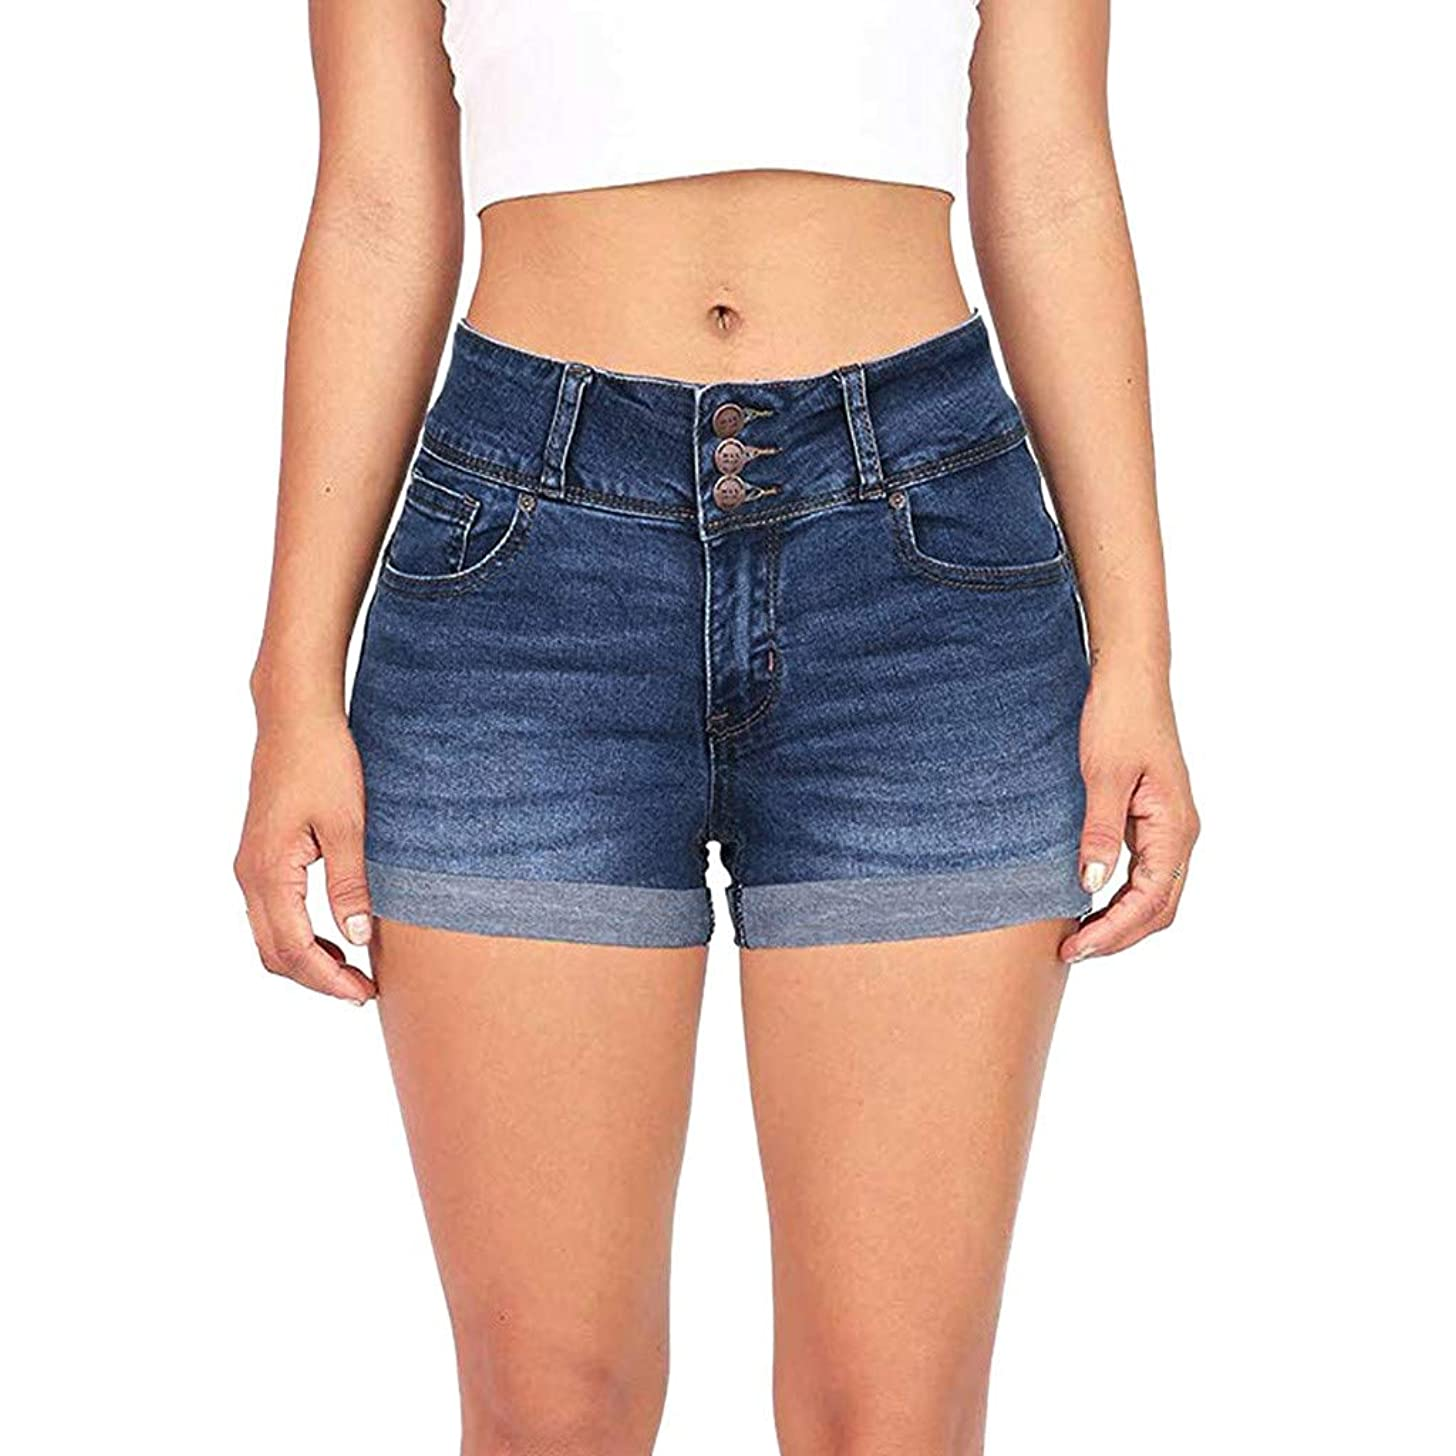 Goddessvan 2019 Women Low Waisted Washed Short Mini Jeans Softener Denim Pants Shorts with Three-Breasted Buckle